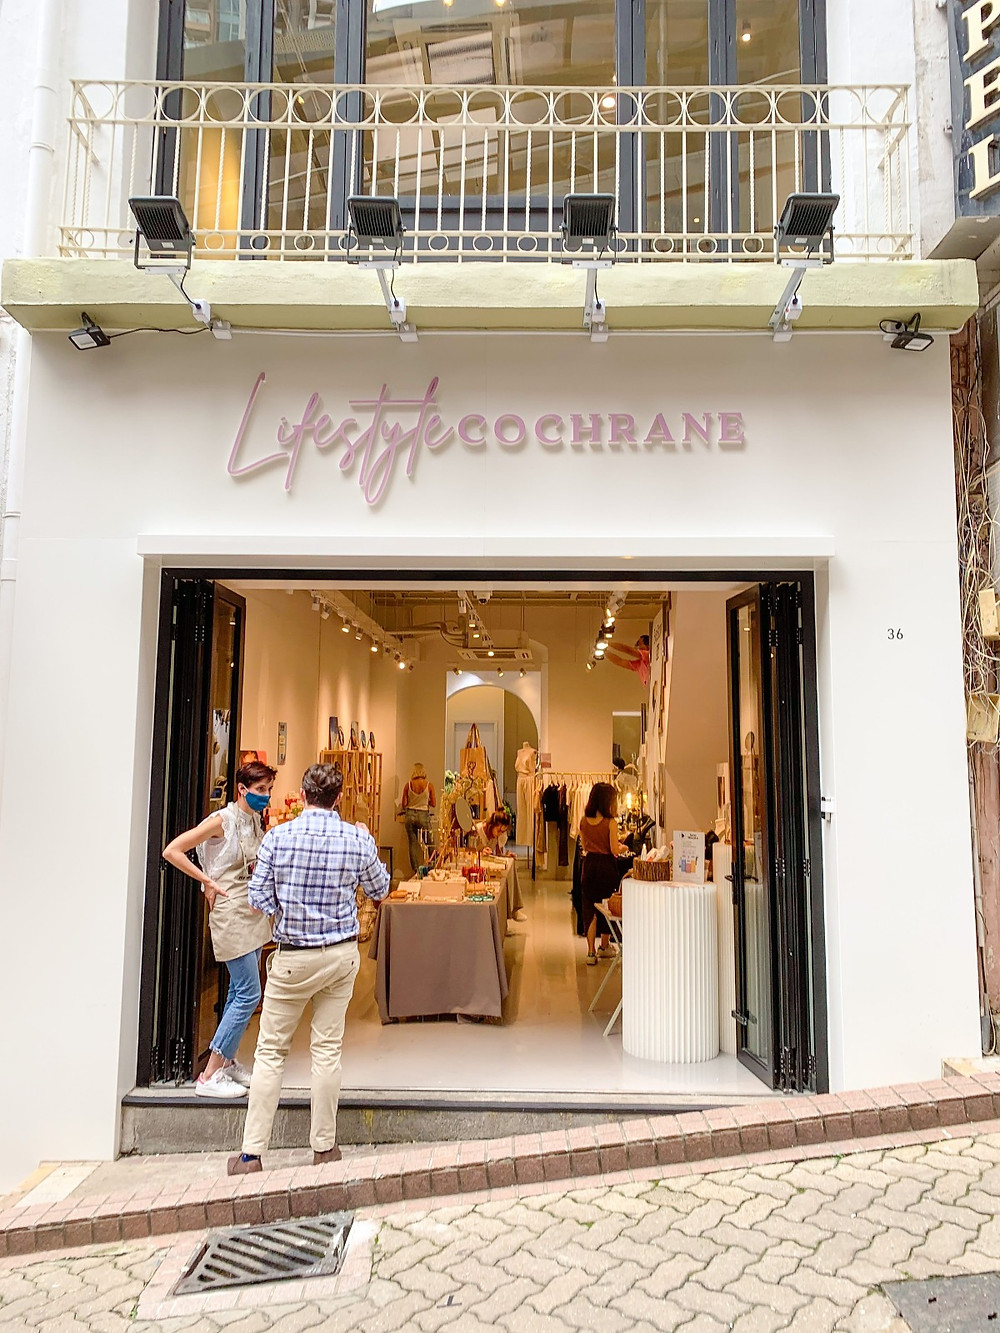 The store front of Lifestyle Cochrane